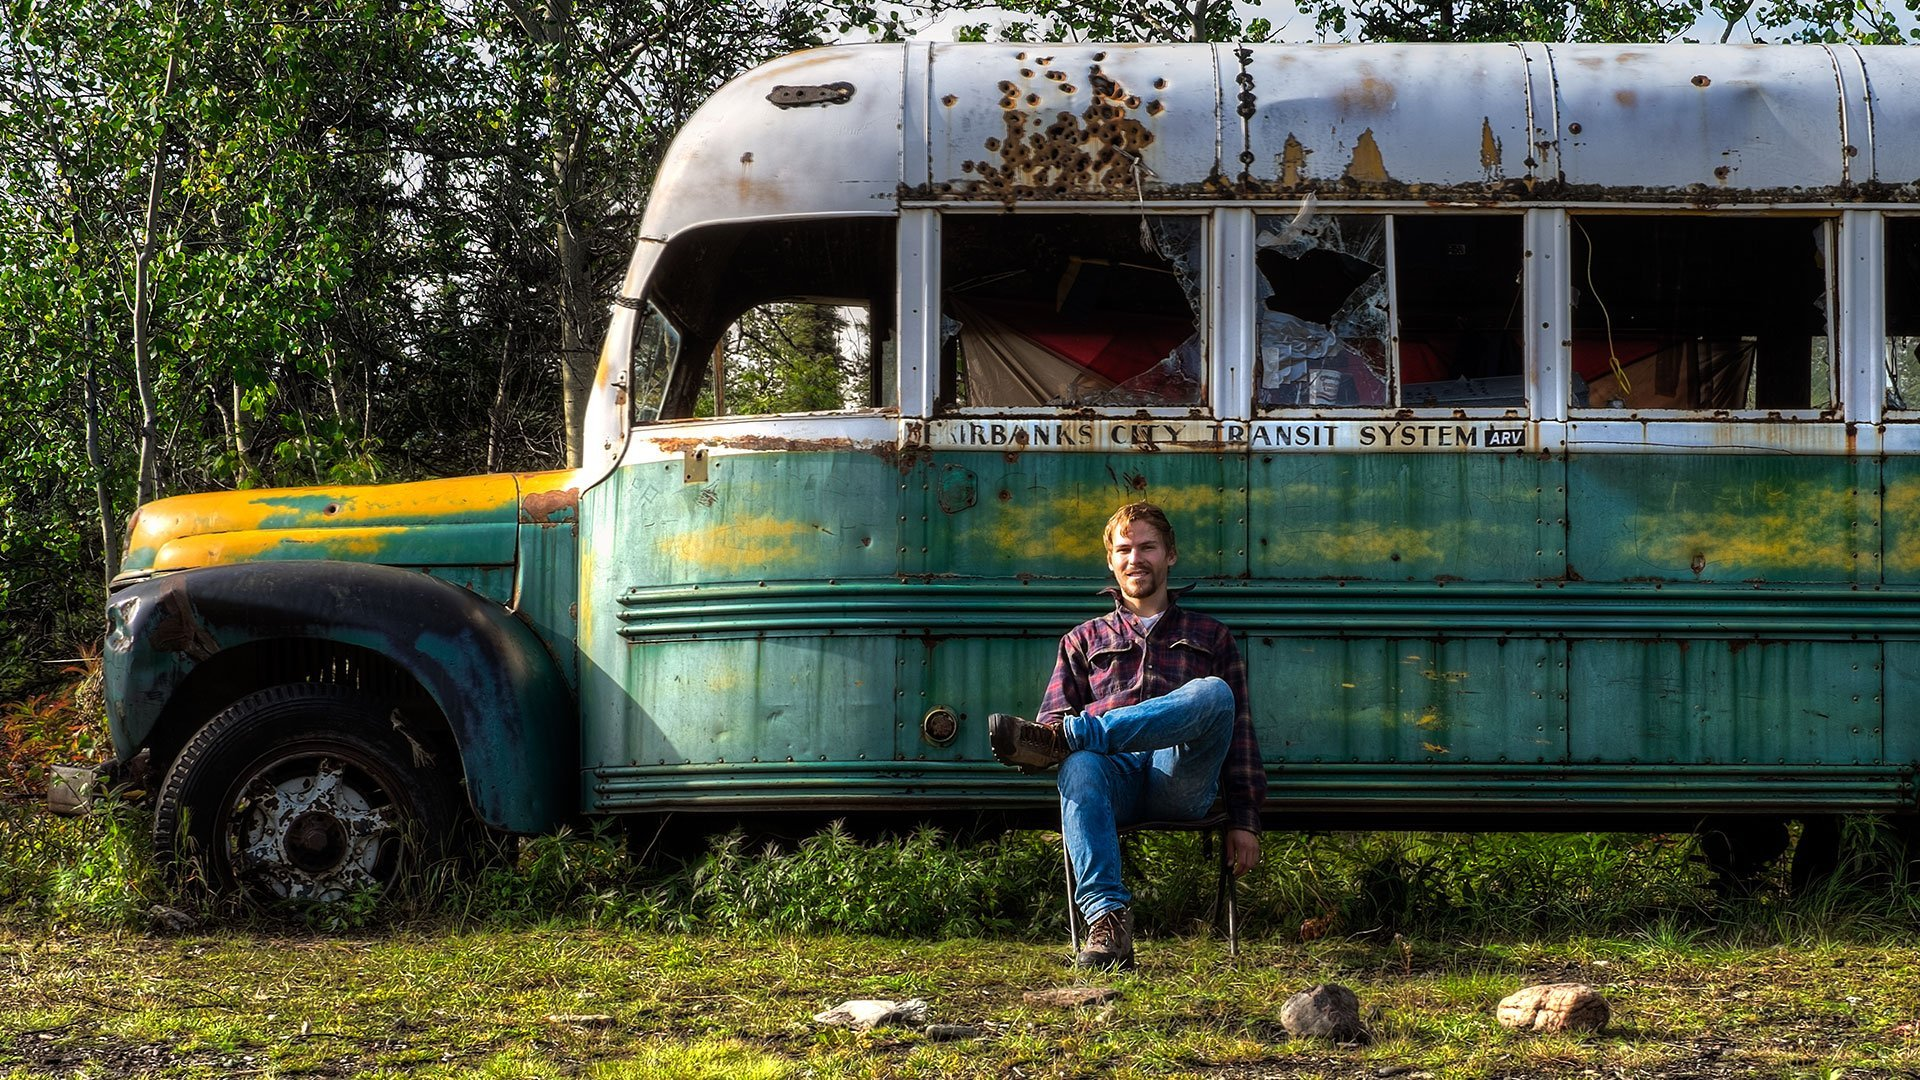 Stampede Trail and Bus 142 in Alaska 2019 - Best Time